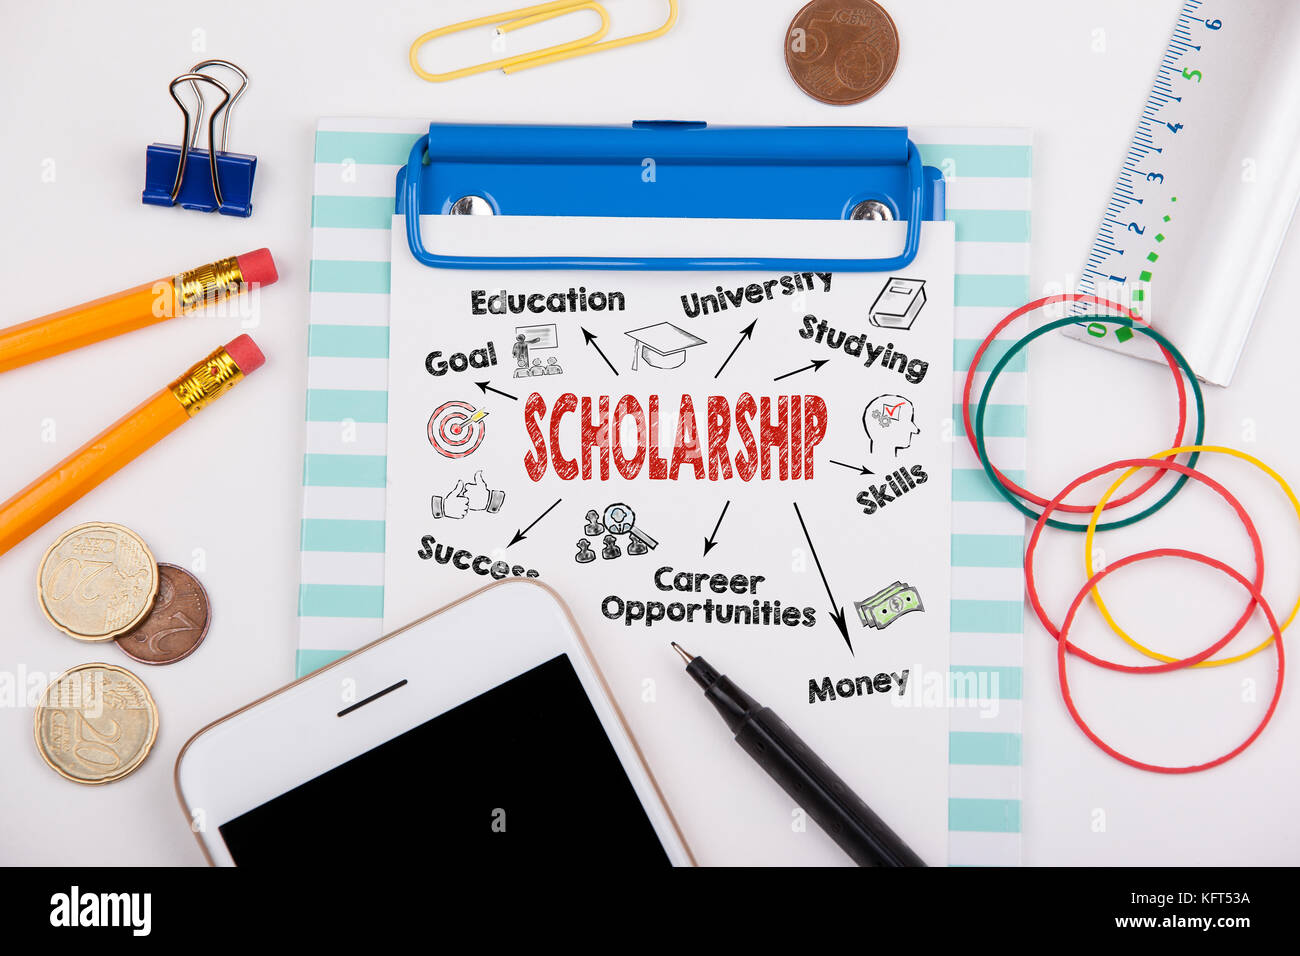 scholarship concept. Chart with keywords and icons. Office desk with stationery and mobile phone - Stock Image